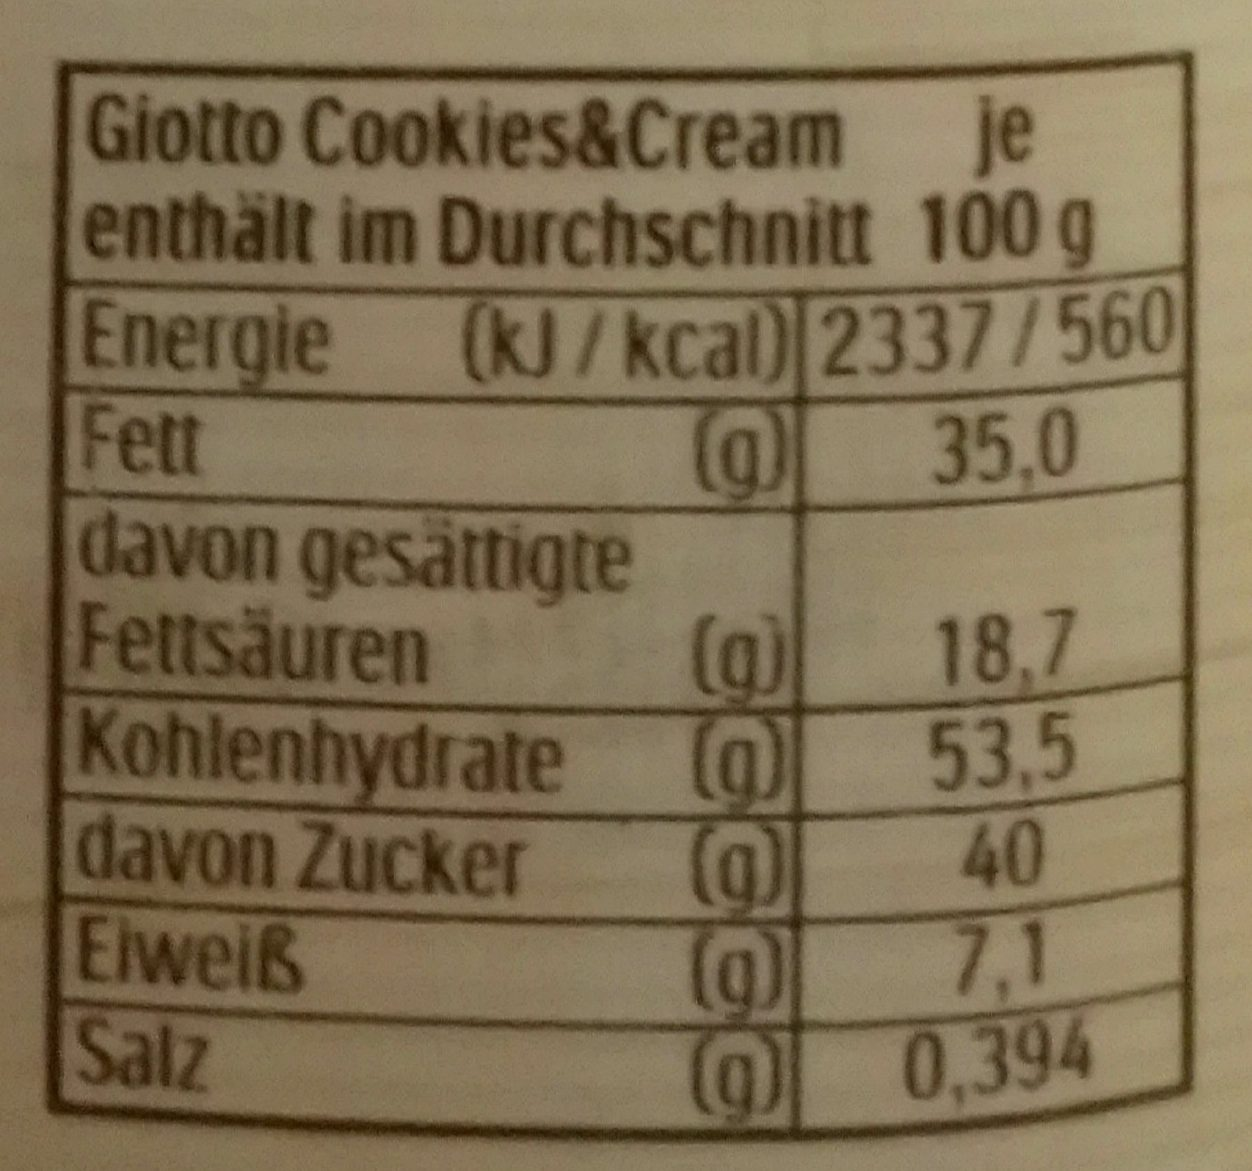 Giotto cookies&cream - 154g  Giotto cookies&...